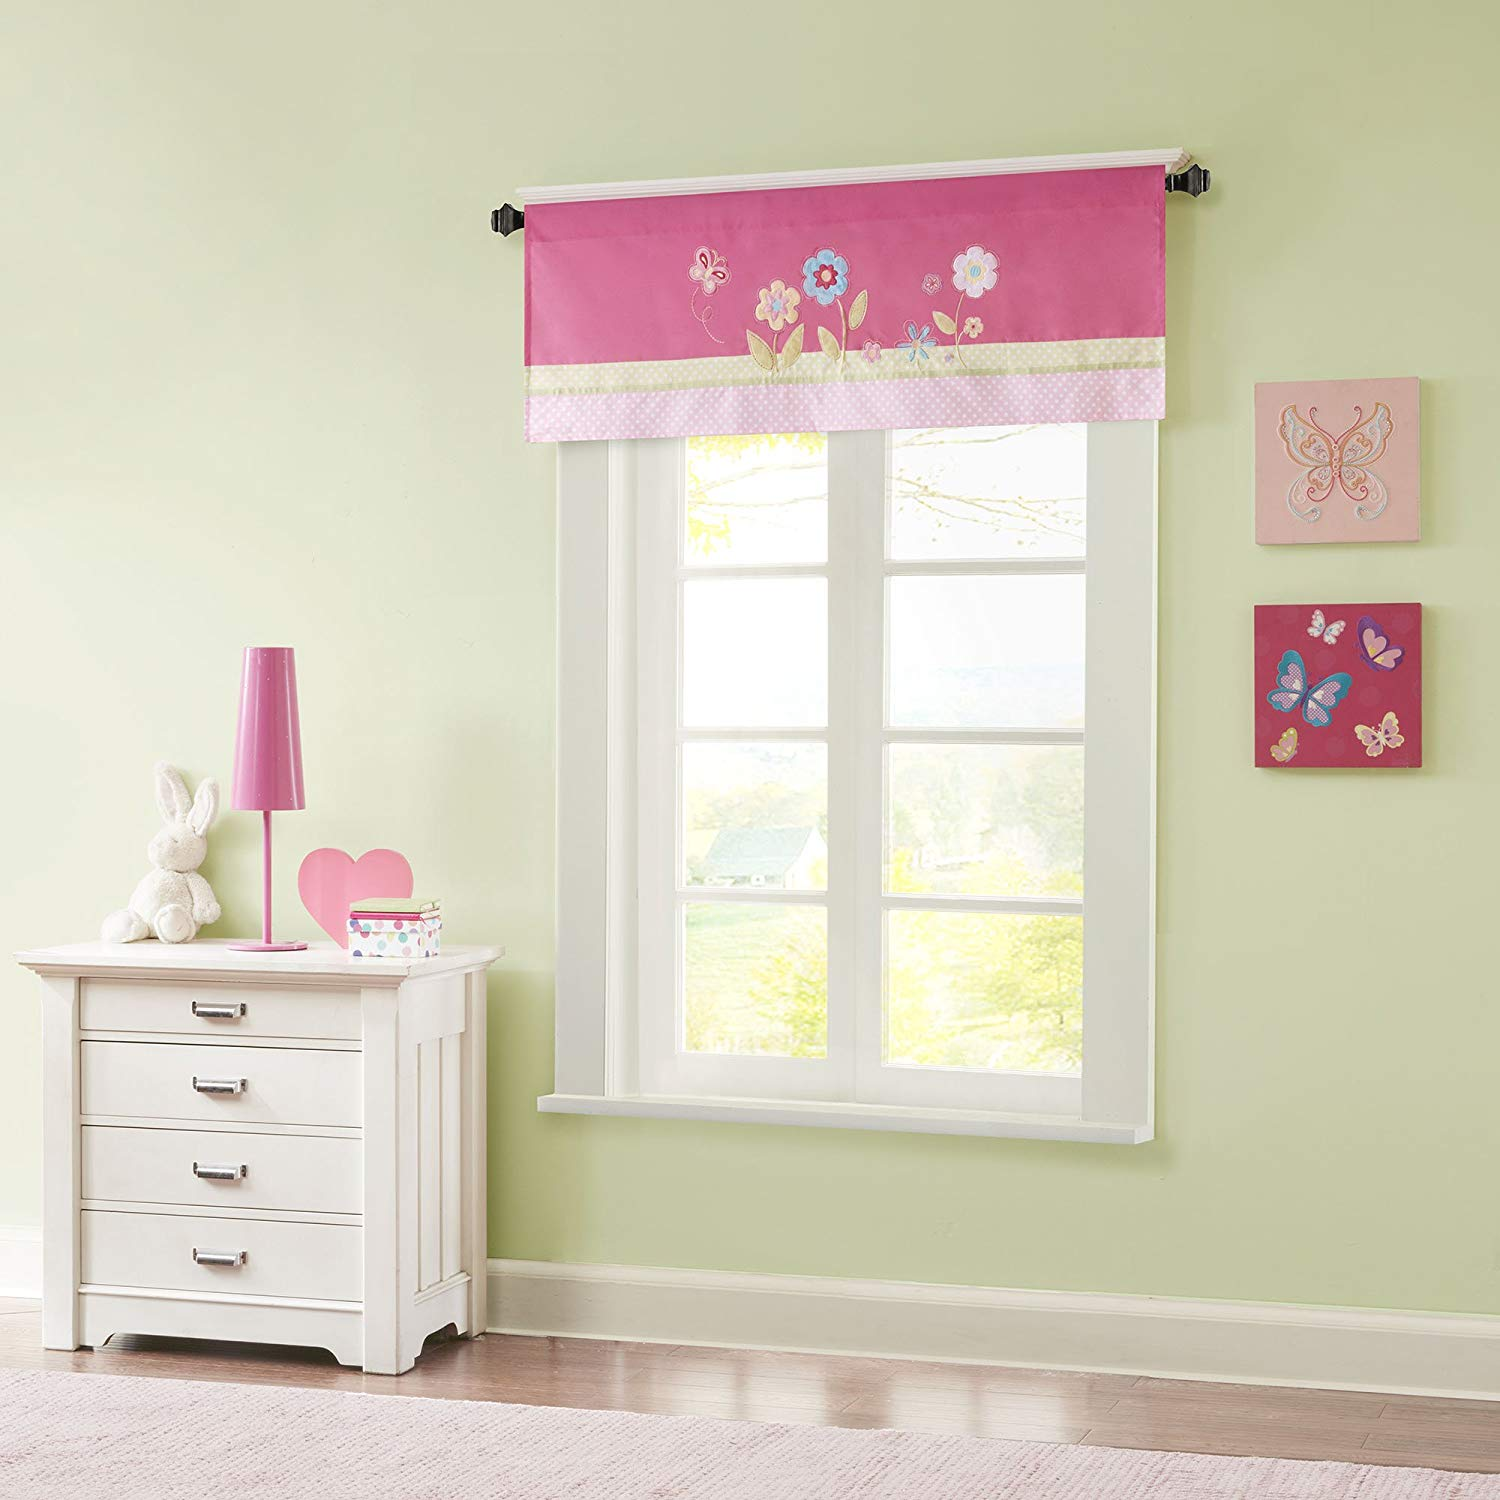 Spring Bloom Printed And Applique Embroidered Kids Valances For Windows Girls Valance For Bedroom 50x18 Pink Stop To Smell The Flowers With Our Spring By Mizone Walmart Com Walmart Com